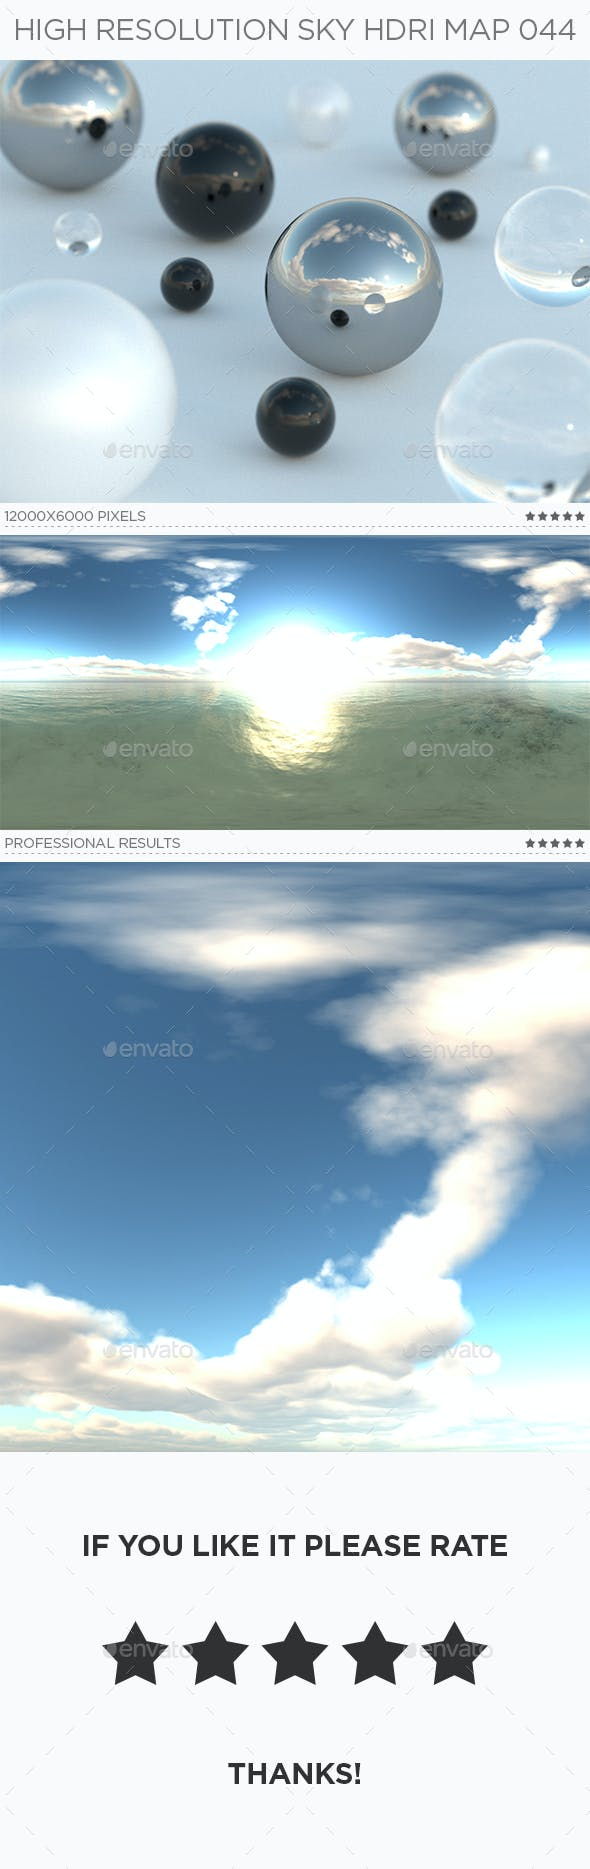 High Resolution Sky HDRi Map 044 - 3DOcean Item for Sale